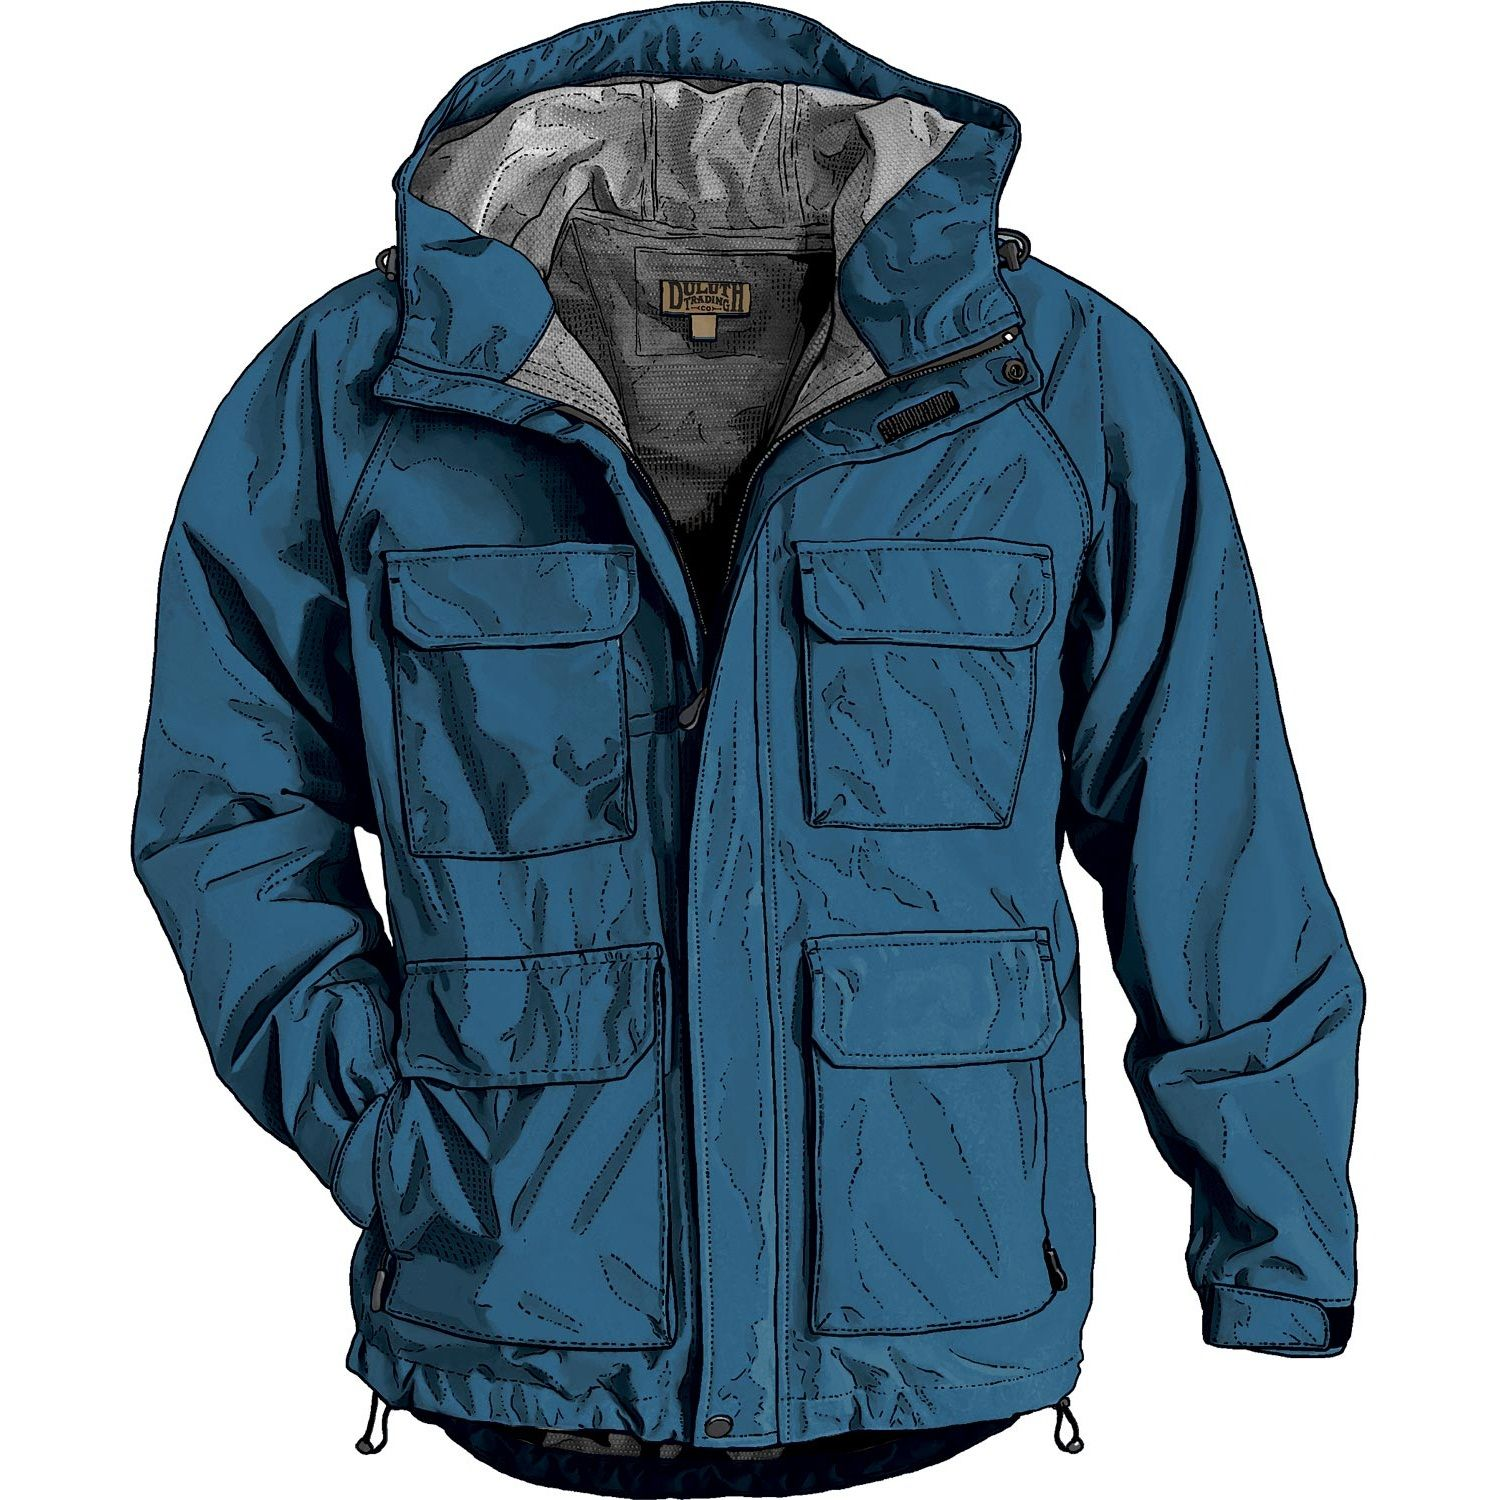 Men's No-Rainer Waterproof Rain Jacket - Duluth Trading | Duluth ...